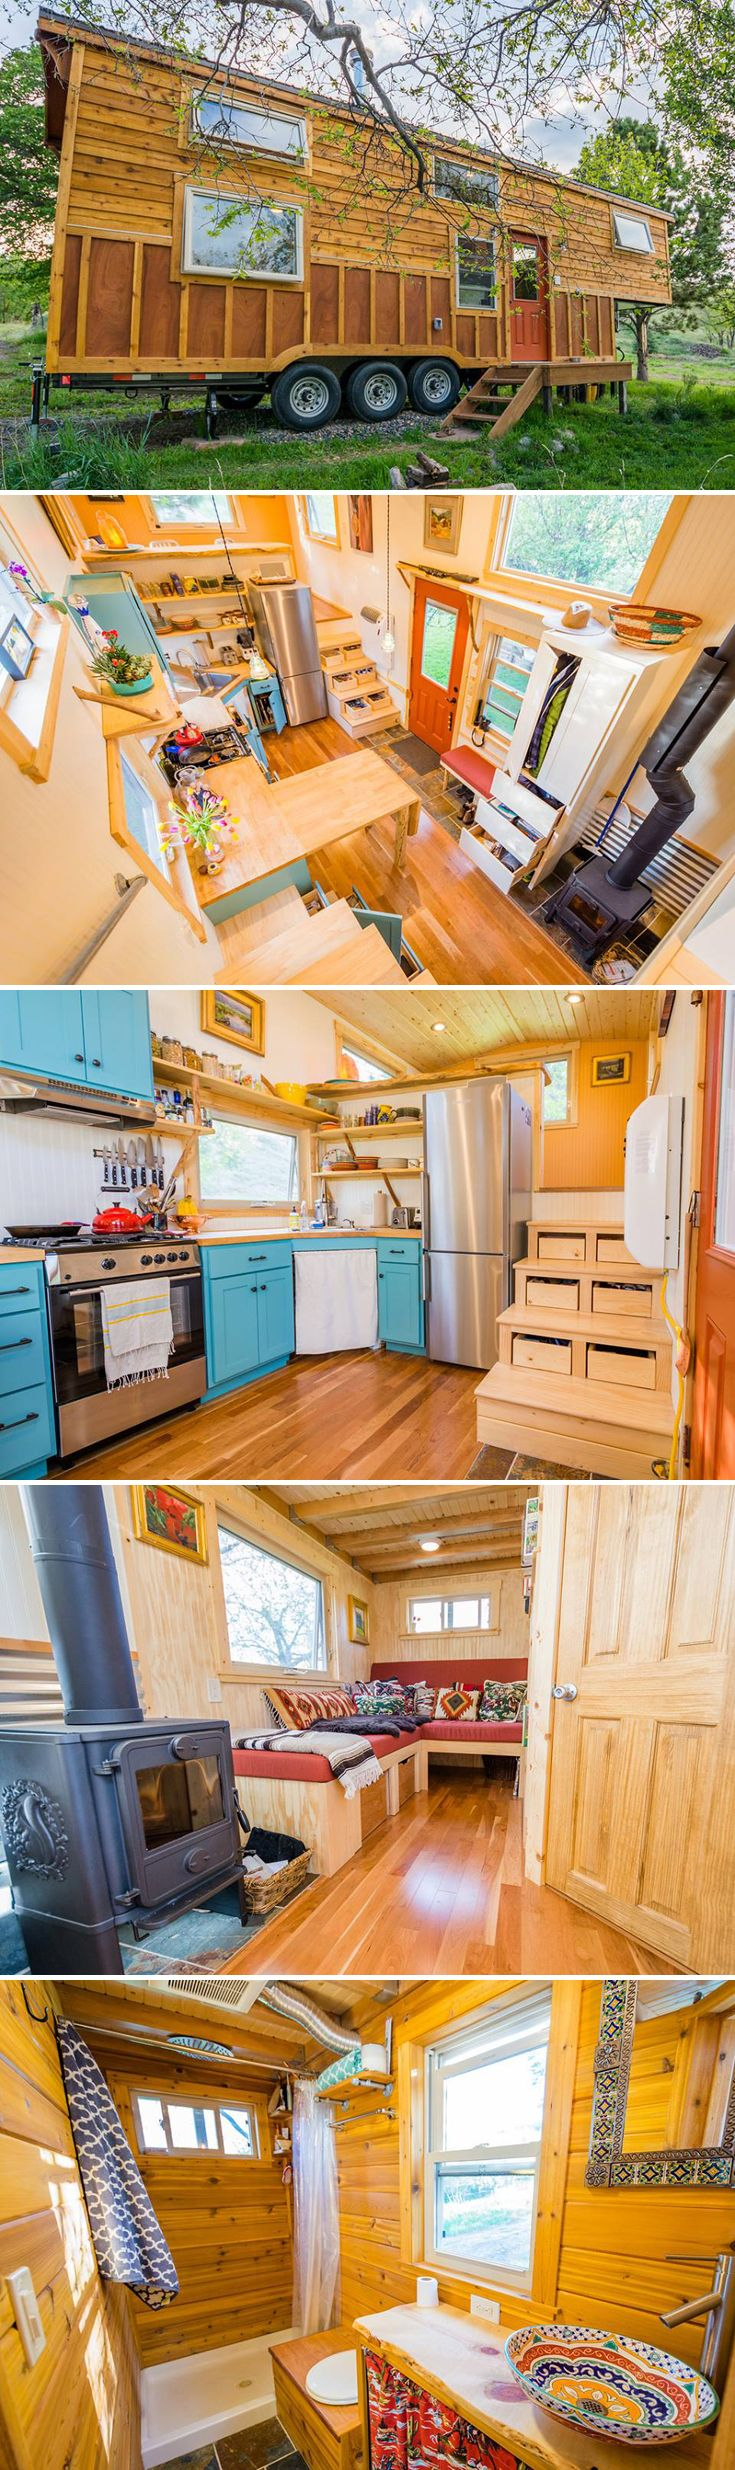 Built on an over-width 10'x33' trailer, this gooseneck tiny house provides a spacious interior with two distinct living spaces and a bedroom loft.